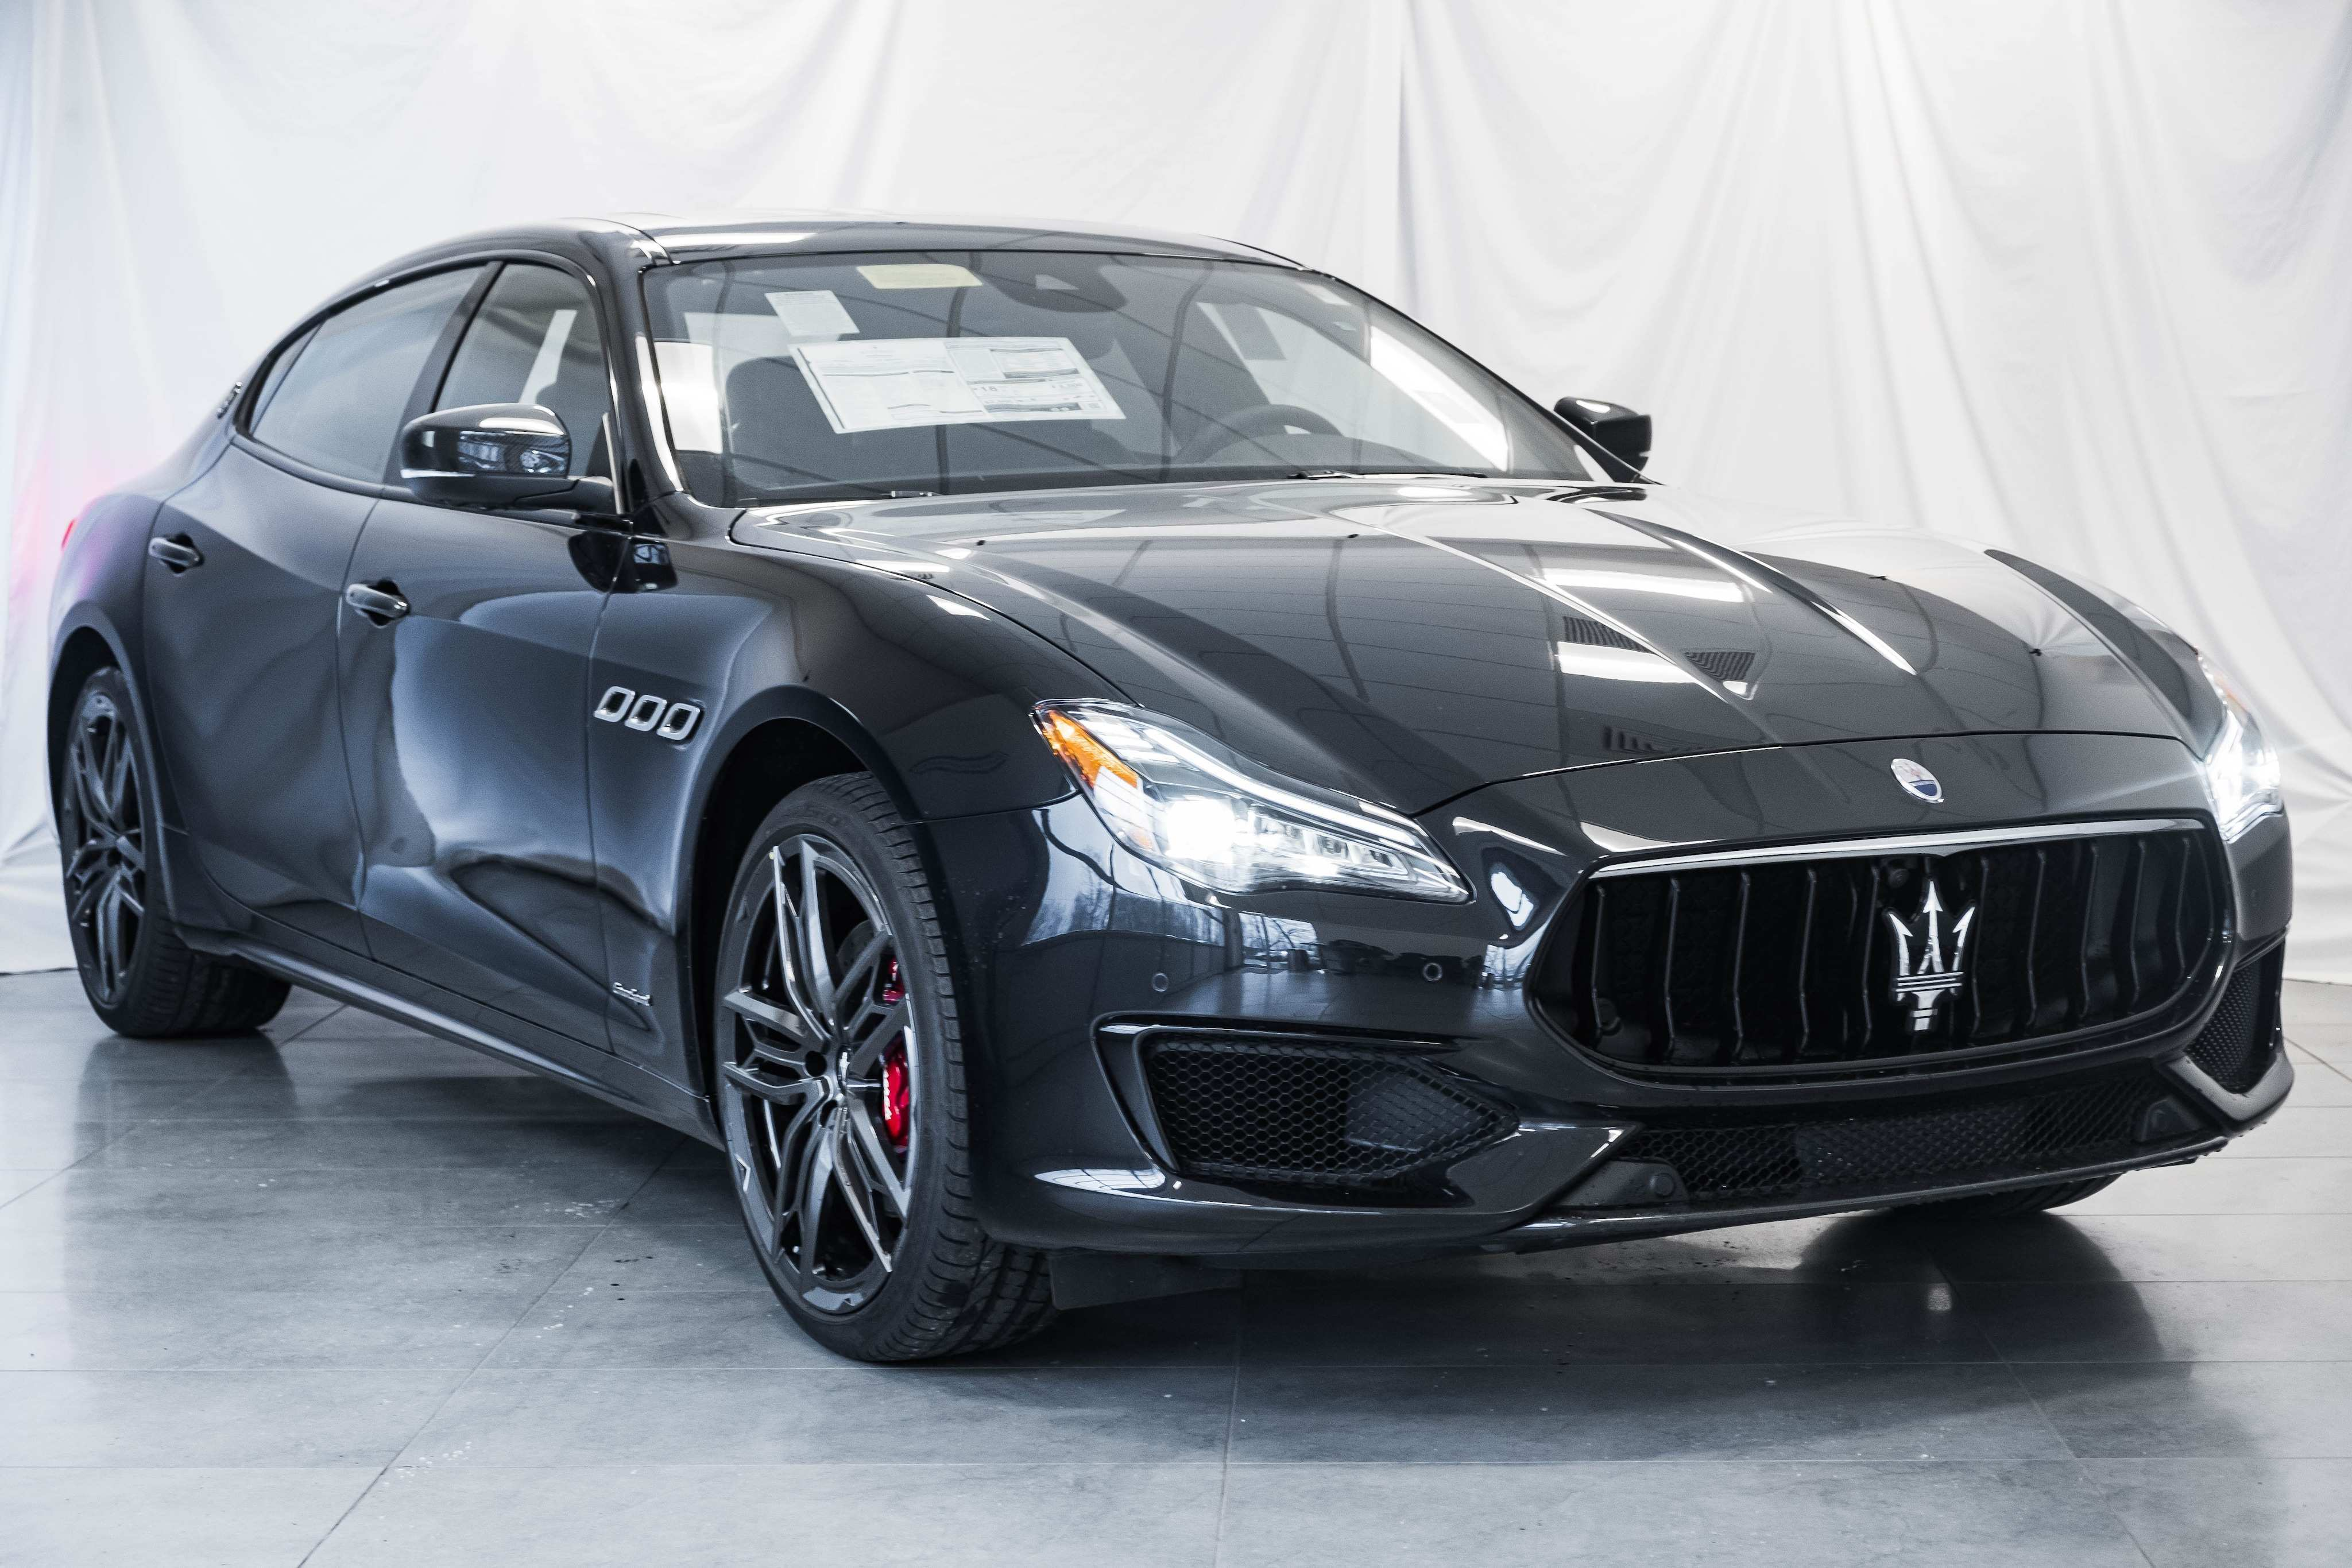 91 The Best Maserati Quattroporte Gts 2019 Review And Release Date